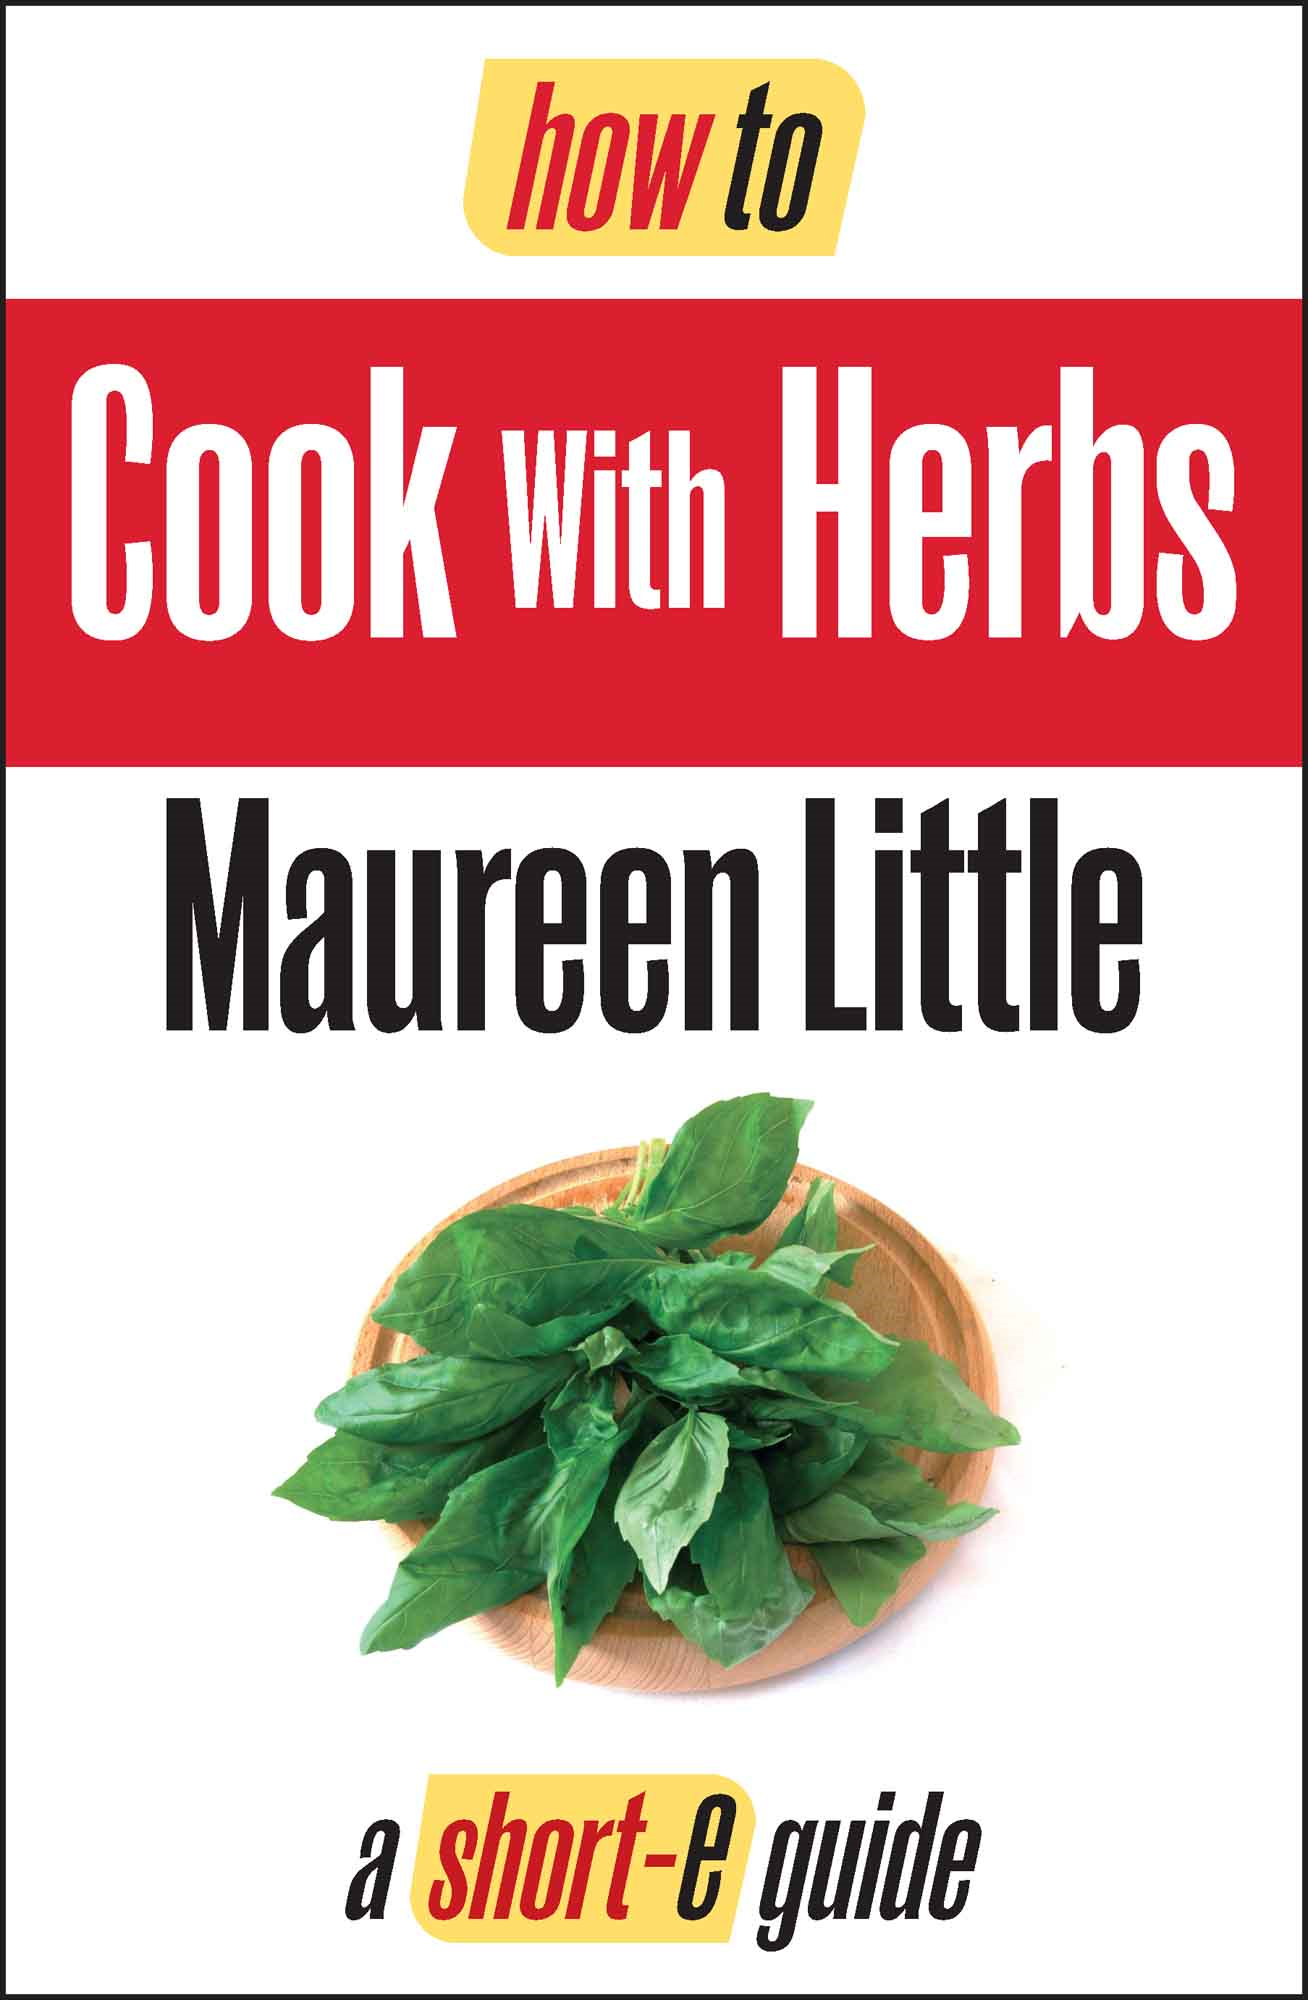 How To Cook with Herbs (Short-e Guide)